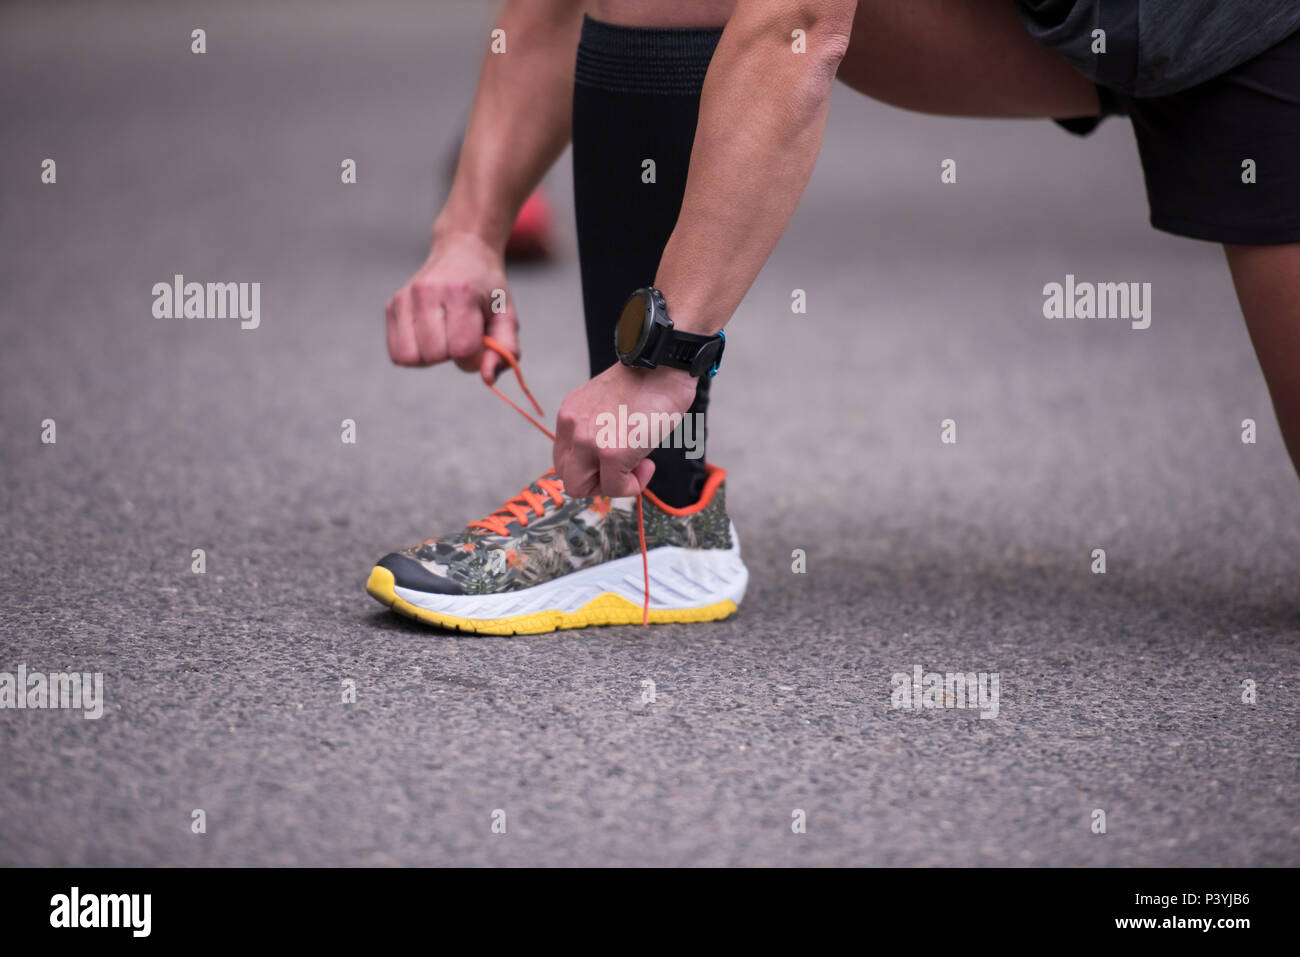 City Getting Woman Park Ready Run At Tying Laces Running Shoes To On vnmN80w